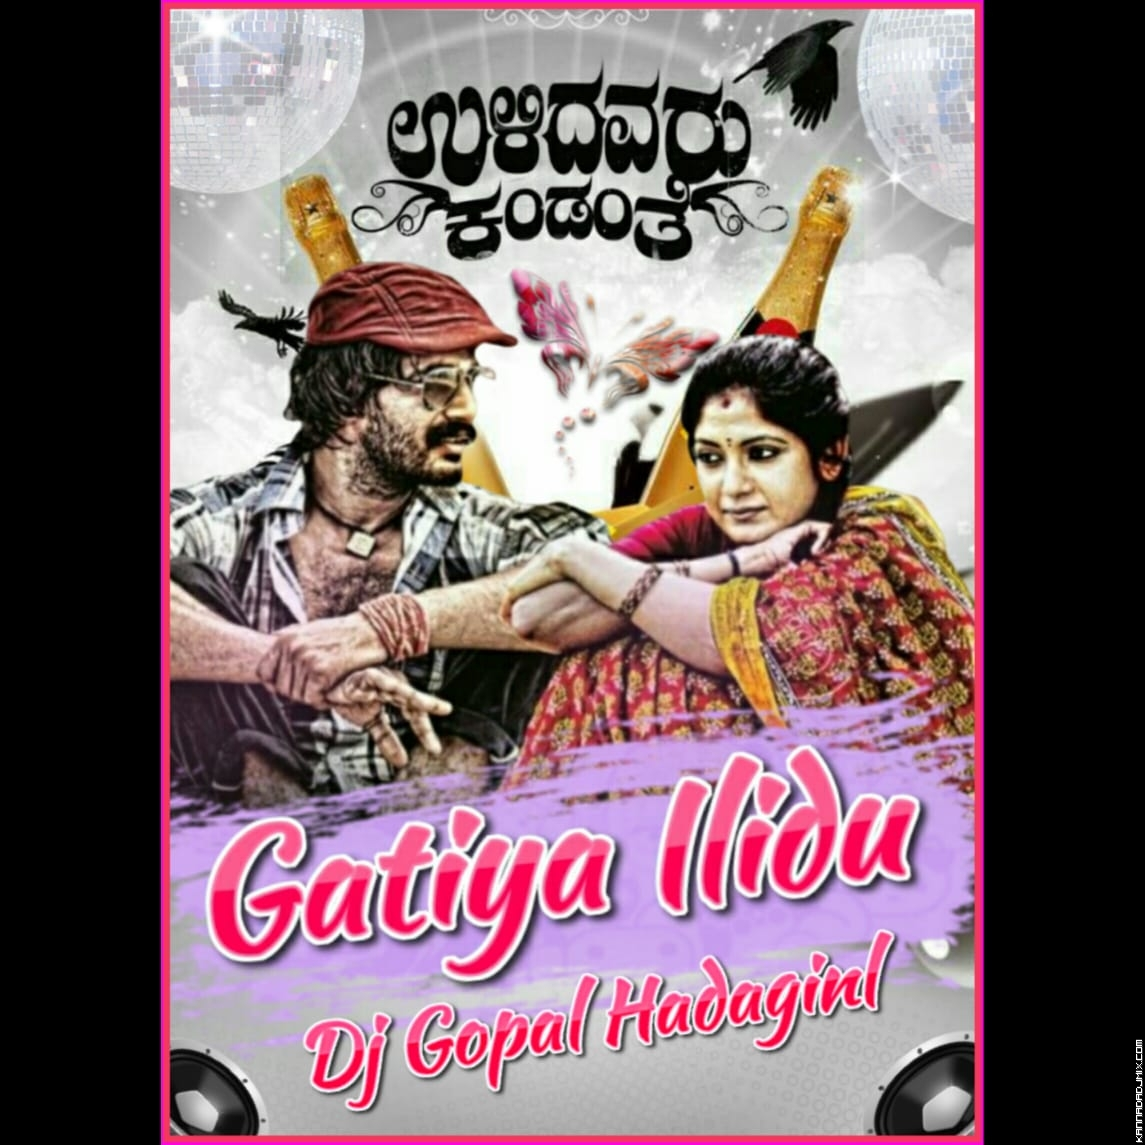 GATIYA_ILIDU_REMIX_DJ_GOPAL_HADAGINAL.mp3